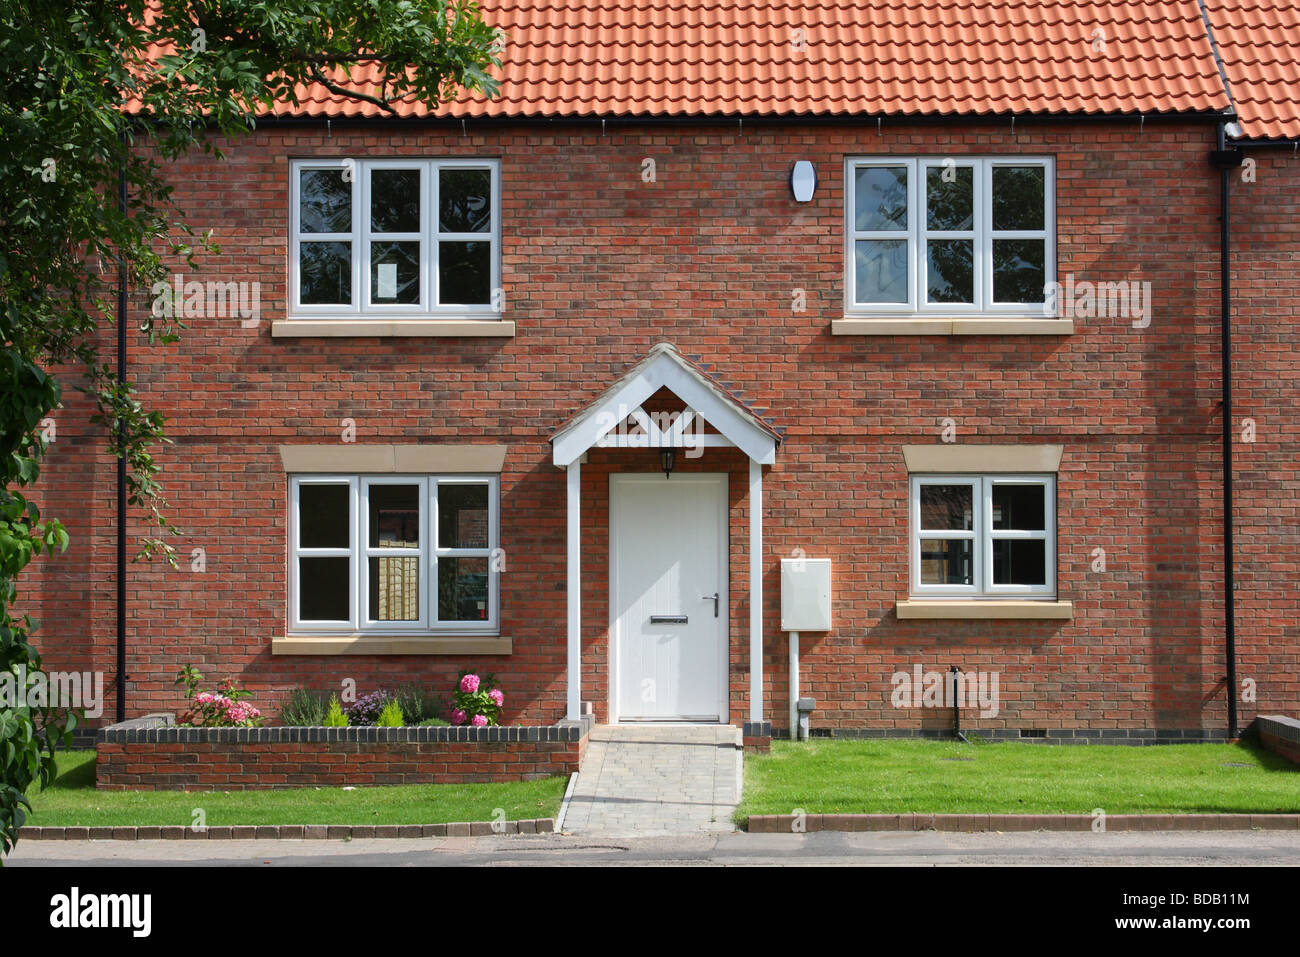 A new build house in the village of Shelford, Nottinghamshire, England, U.K. - Stock Image